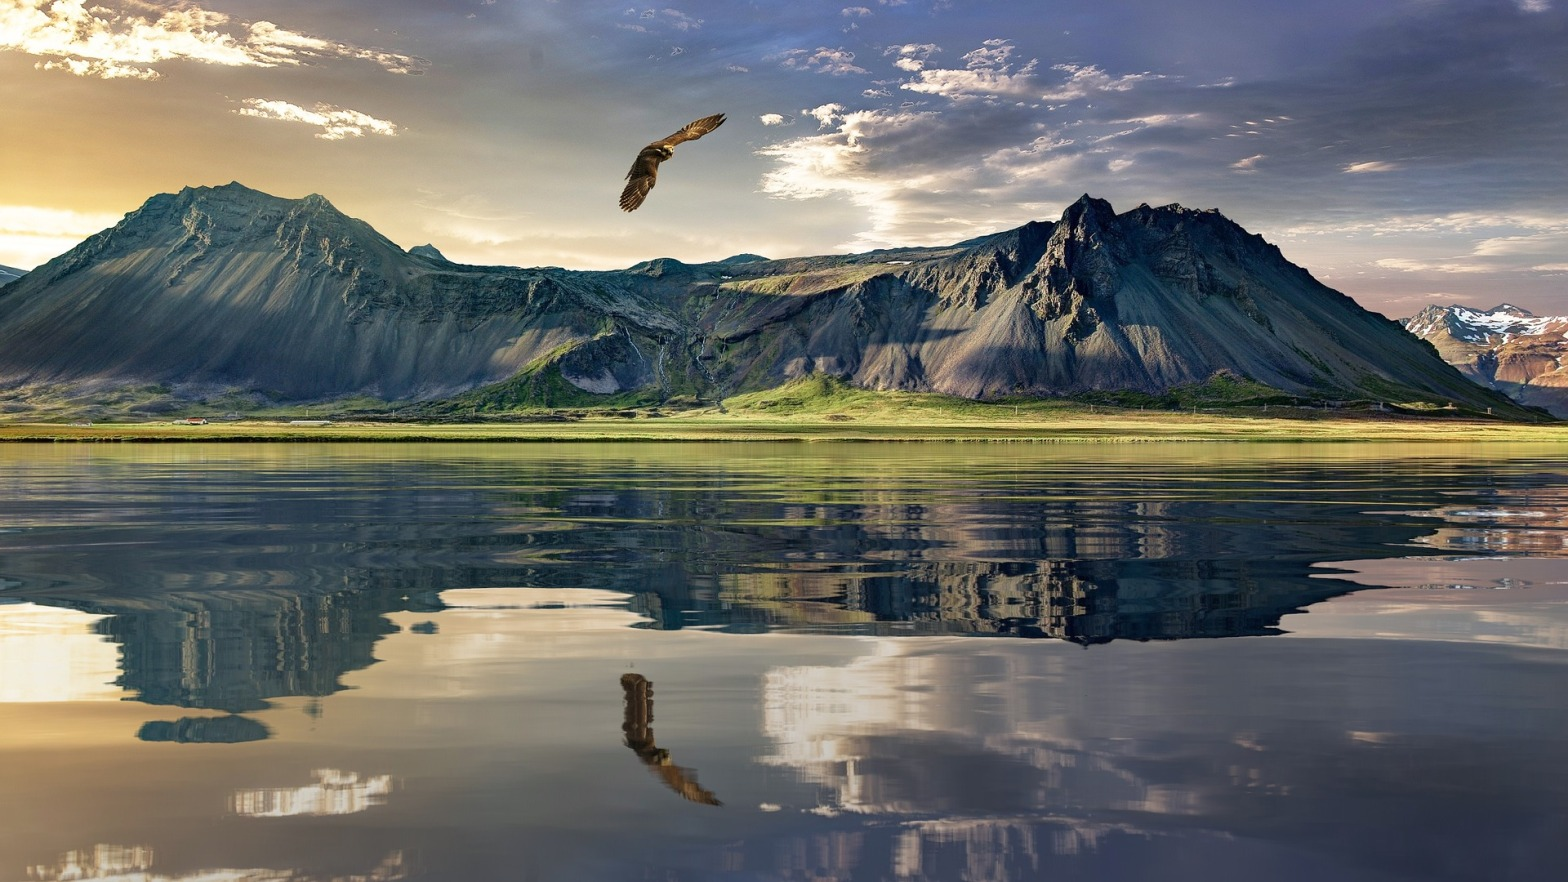 eagle flying over lake with mountains behind it